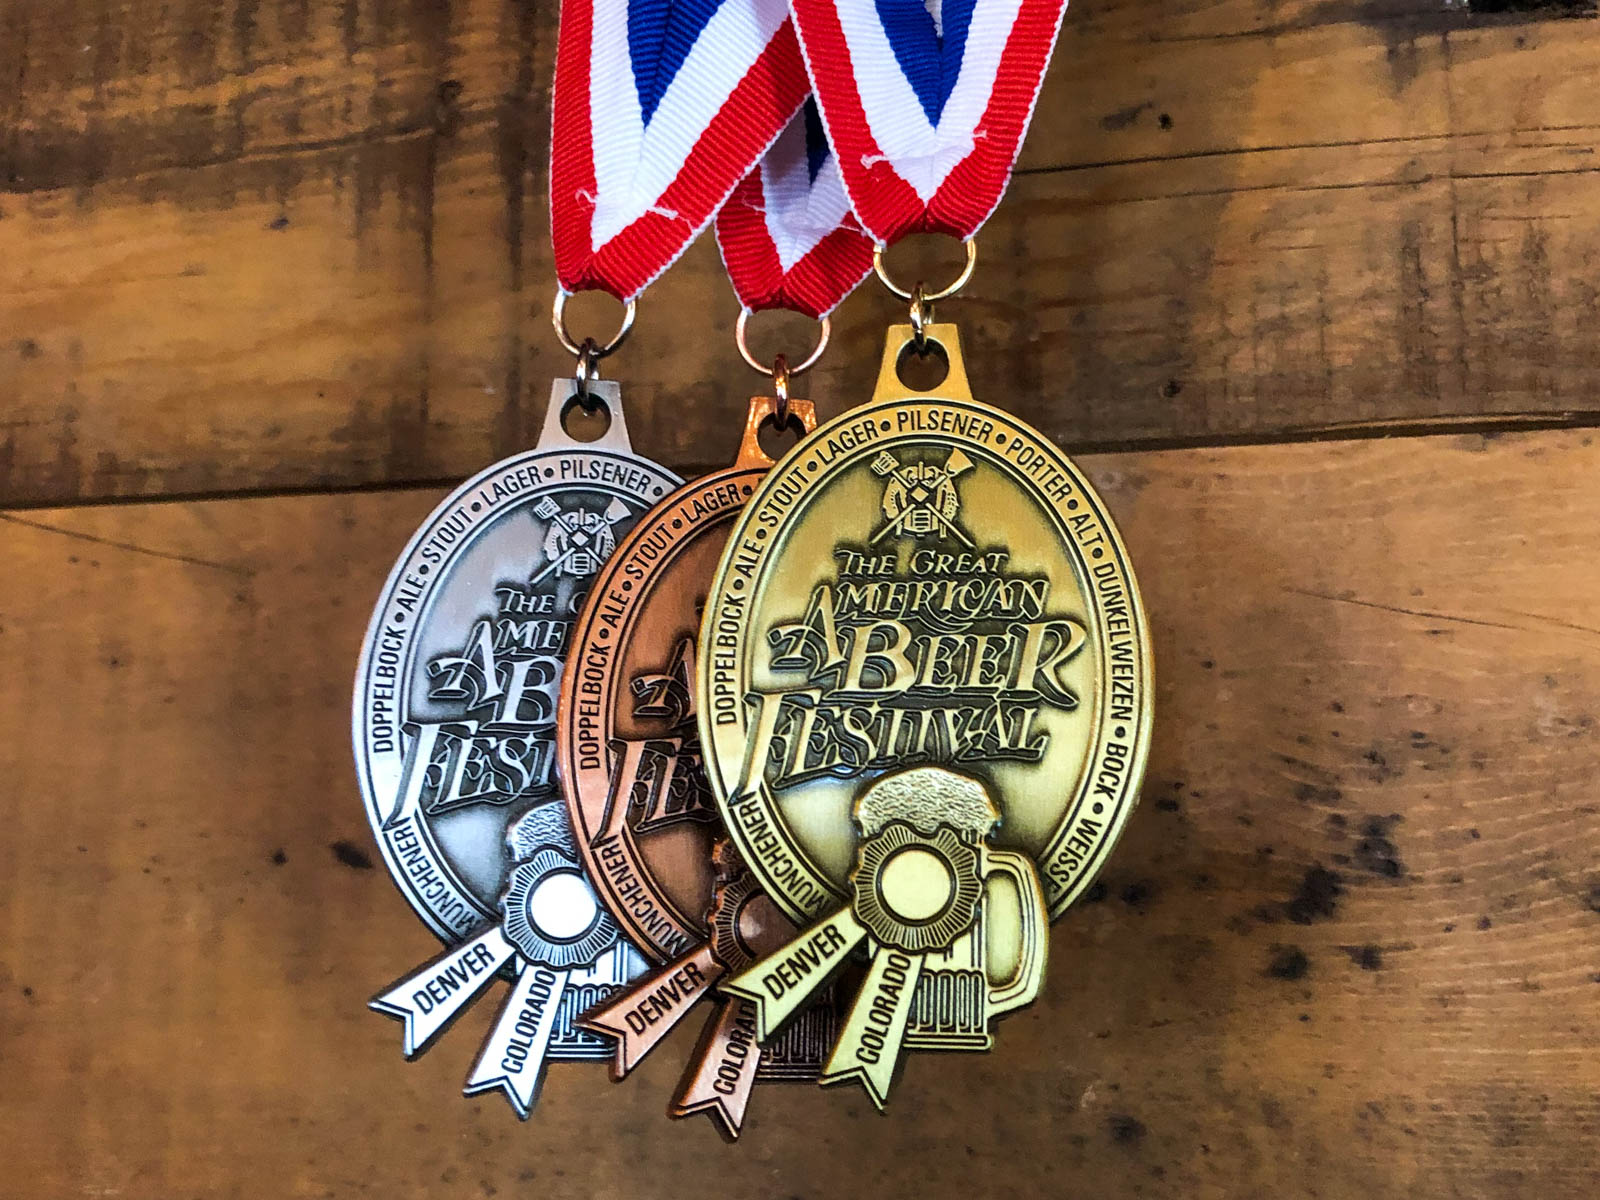 A Small New Mexico Brewery Won the Most Medals at the 2019 Great American Beer Festival